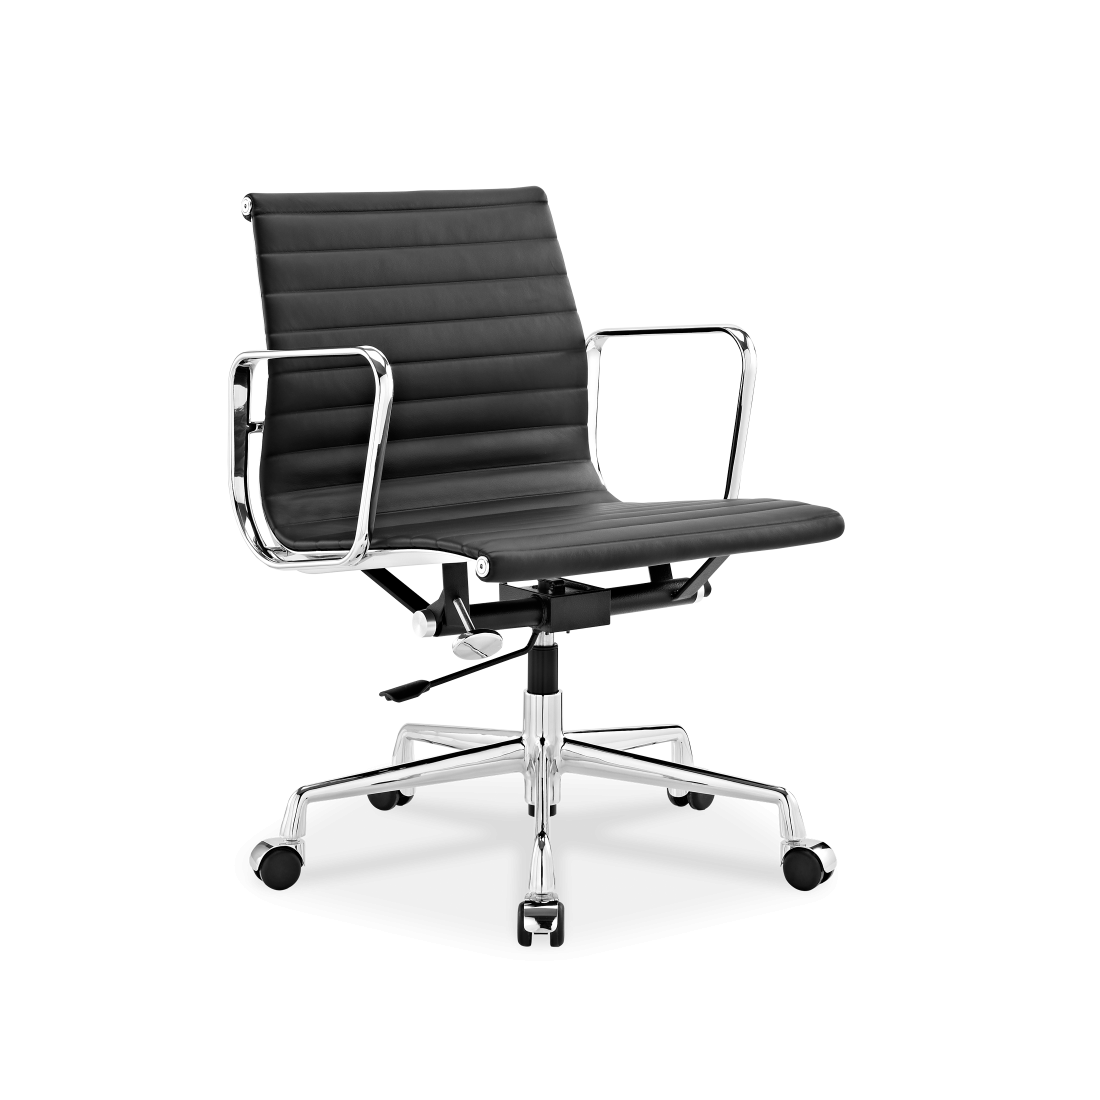 Eames Lounge Office Chair Replica Eames Office Chair